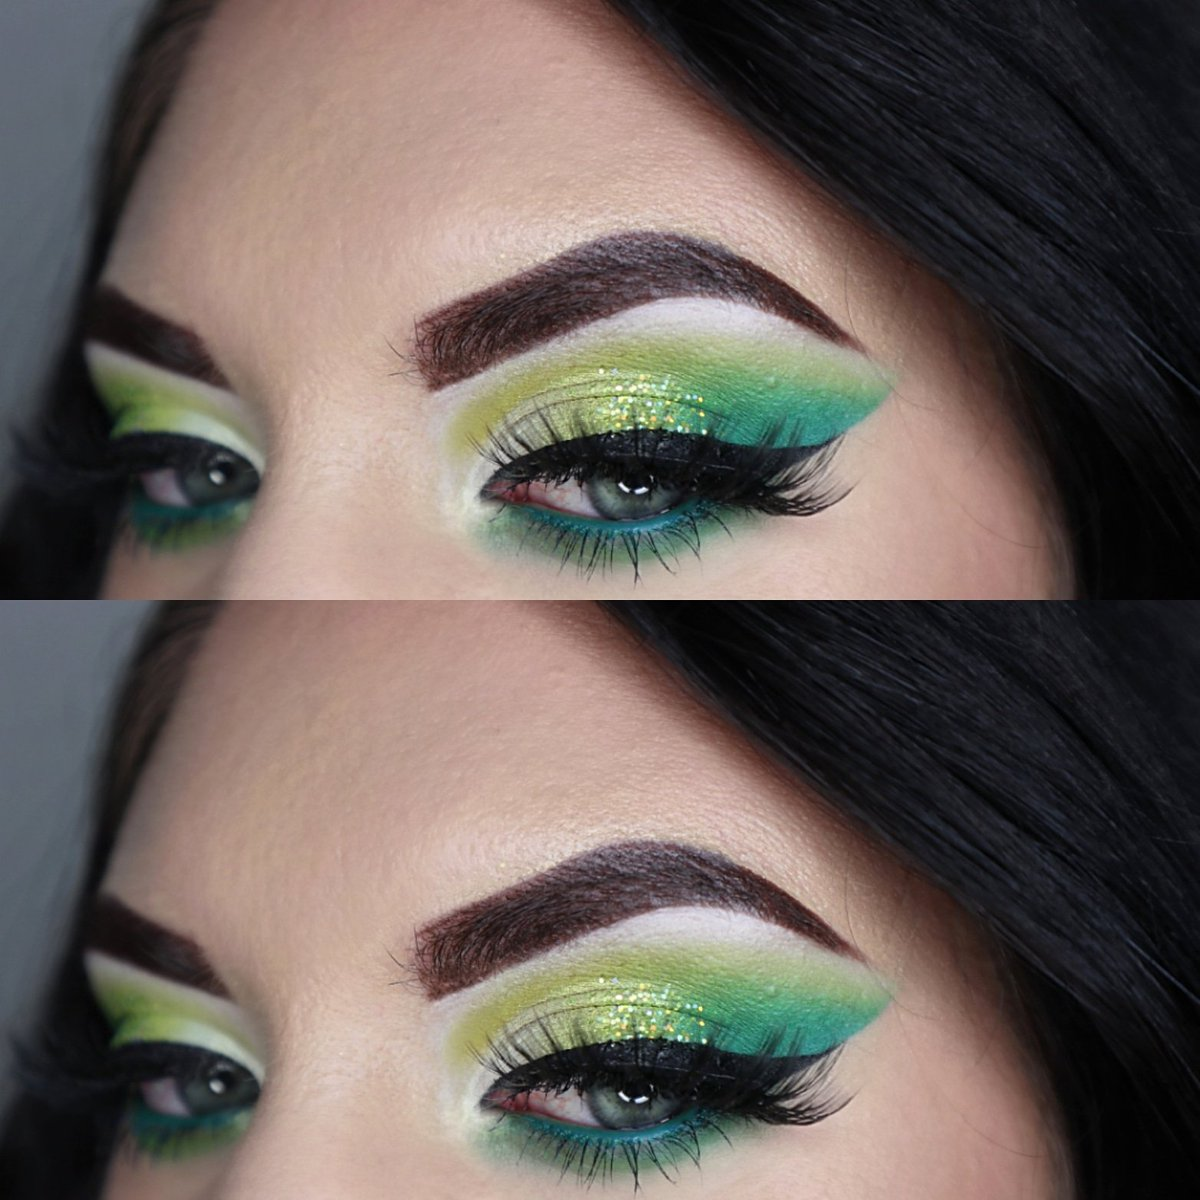 Think green @ABHcosmetics  Dipbrow pomade @MorpheBrushes Life in color palette   @LancomeUSA  Grandiose eyeliner @Itcosmetics  Foundation #mua #makeupartist #denvermua #makeupaddict #eyeshadow #queen #morphe #ABHcosmeticspic.twitter.com/U4Q9Opfs0i